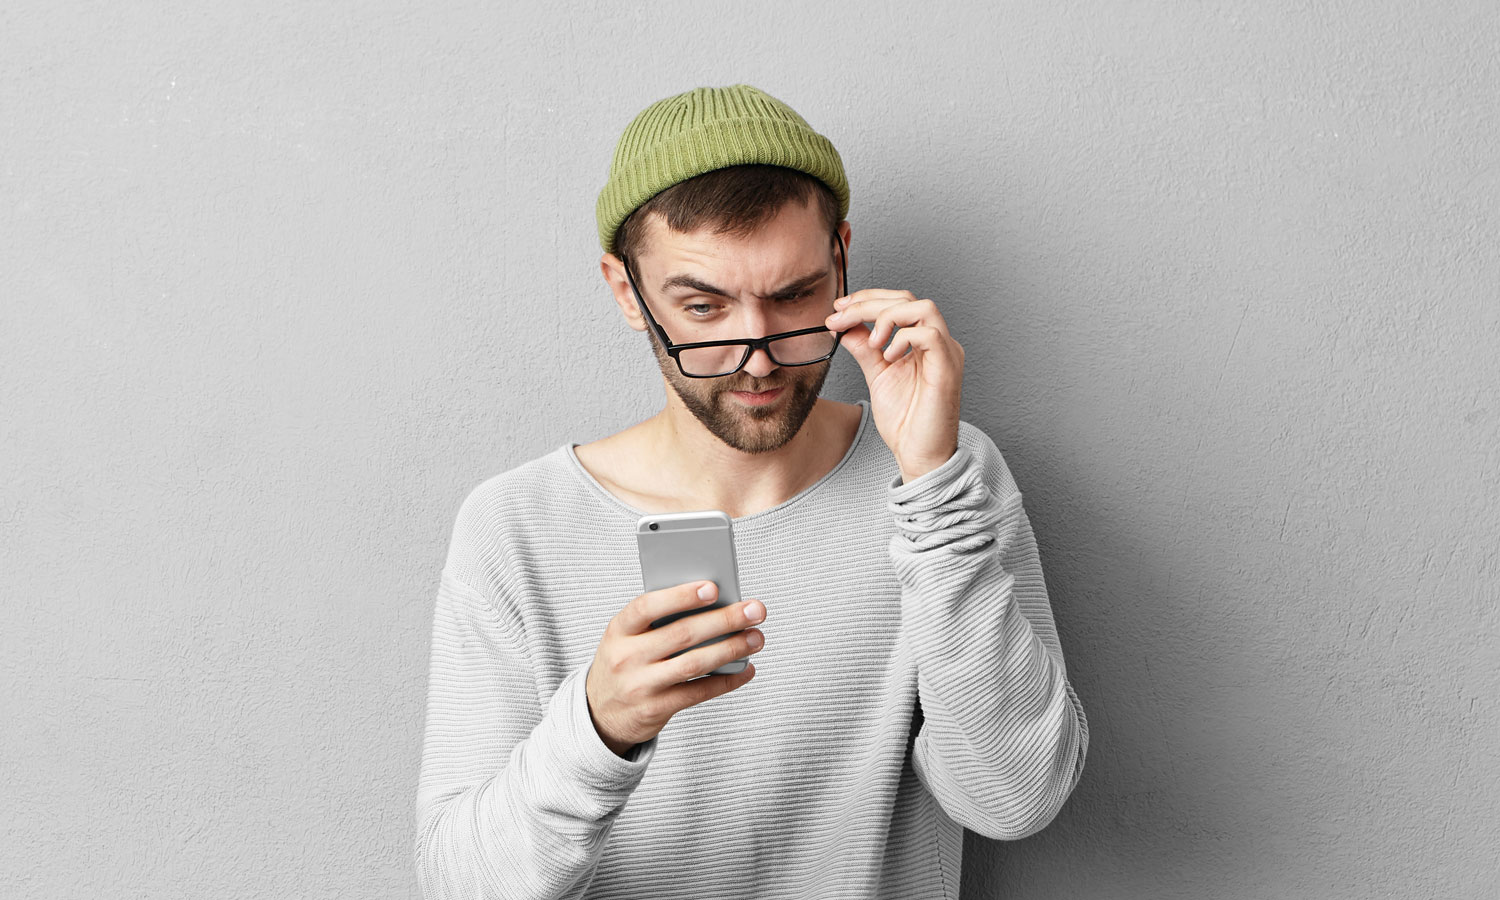 A man lowering his glasses to read a message on his phone